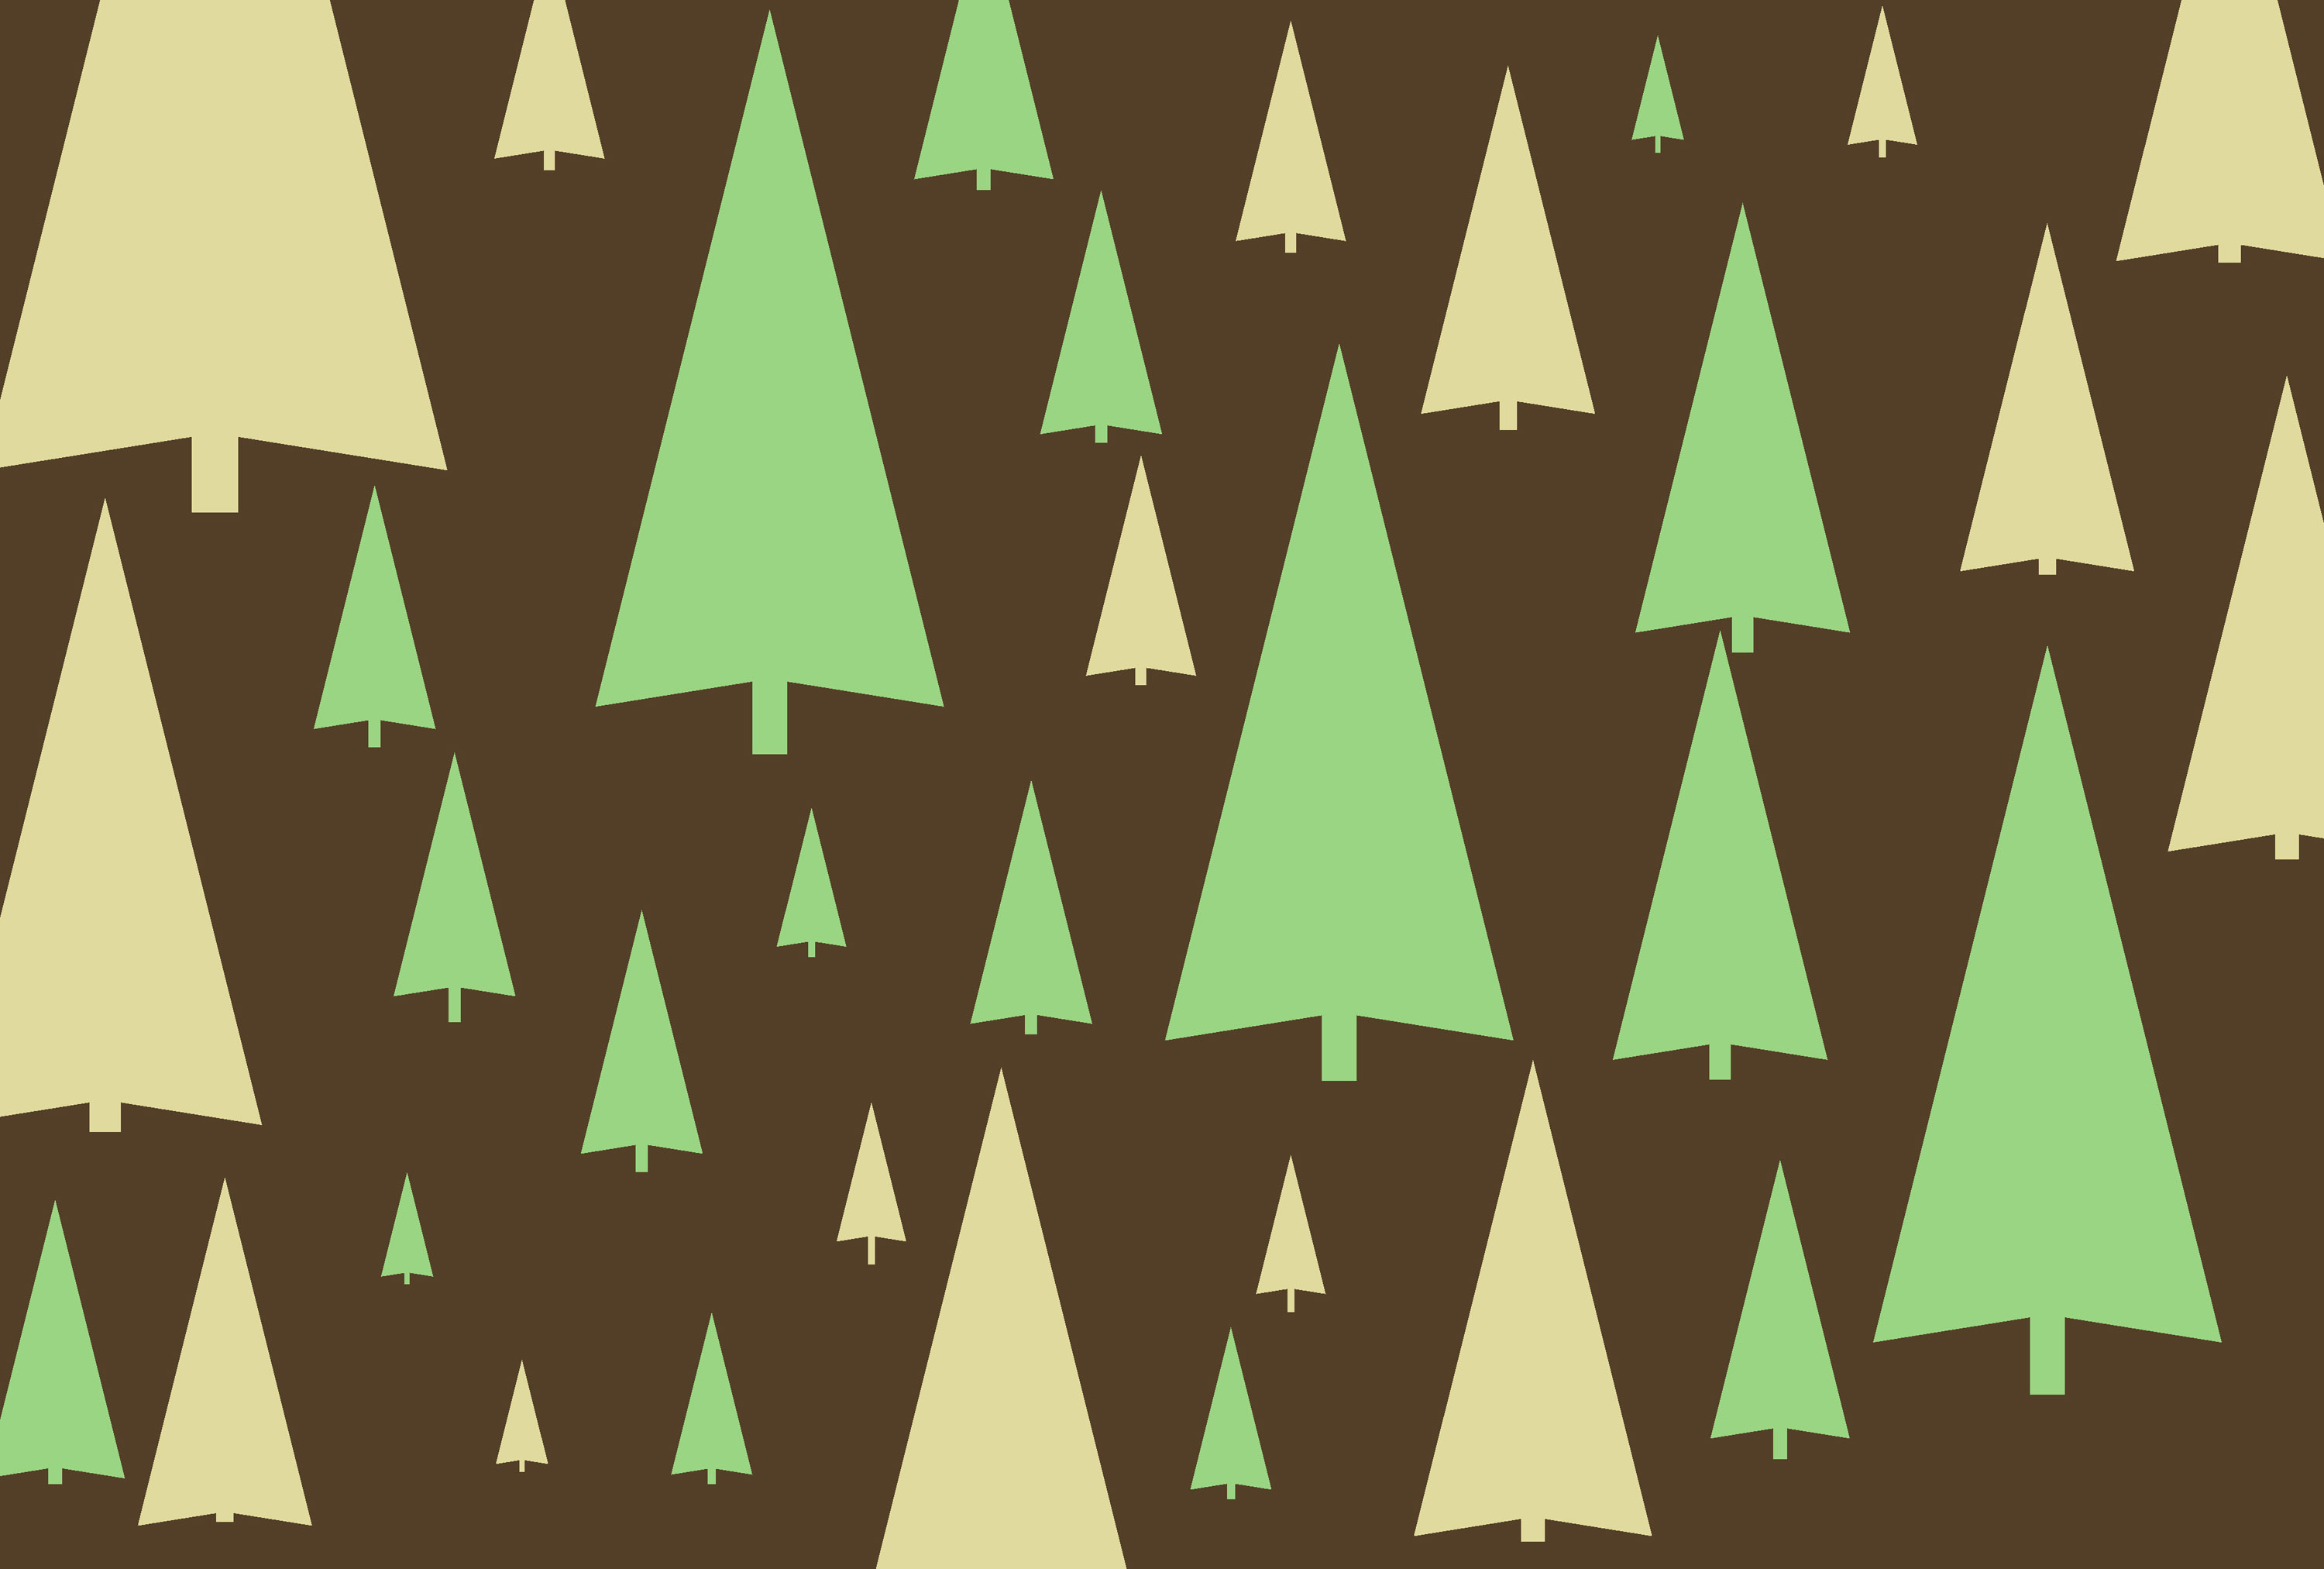 Photo of graphic pine trees free christmas images pine tree symbols create festive christmas themed backdrop with a stylish brown and muted greens and buycottarizona Gallery